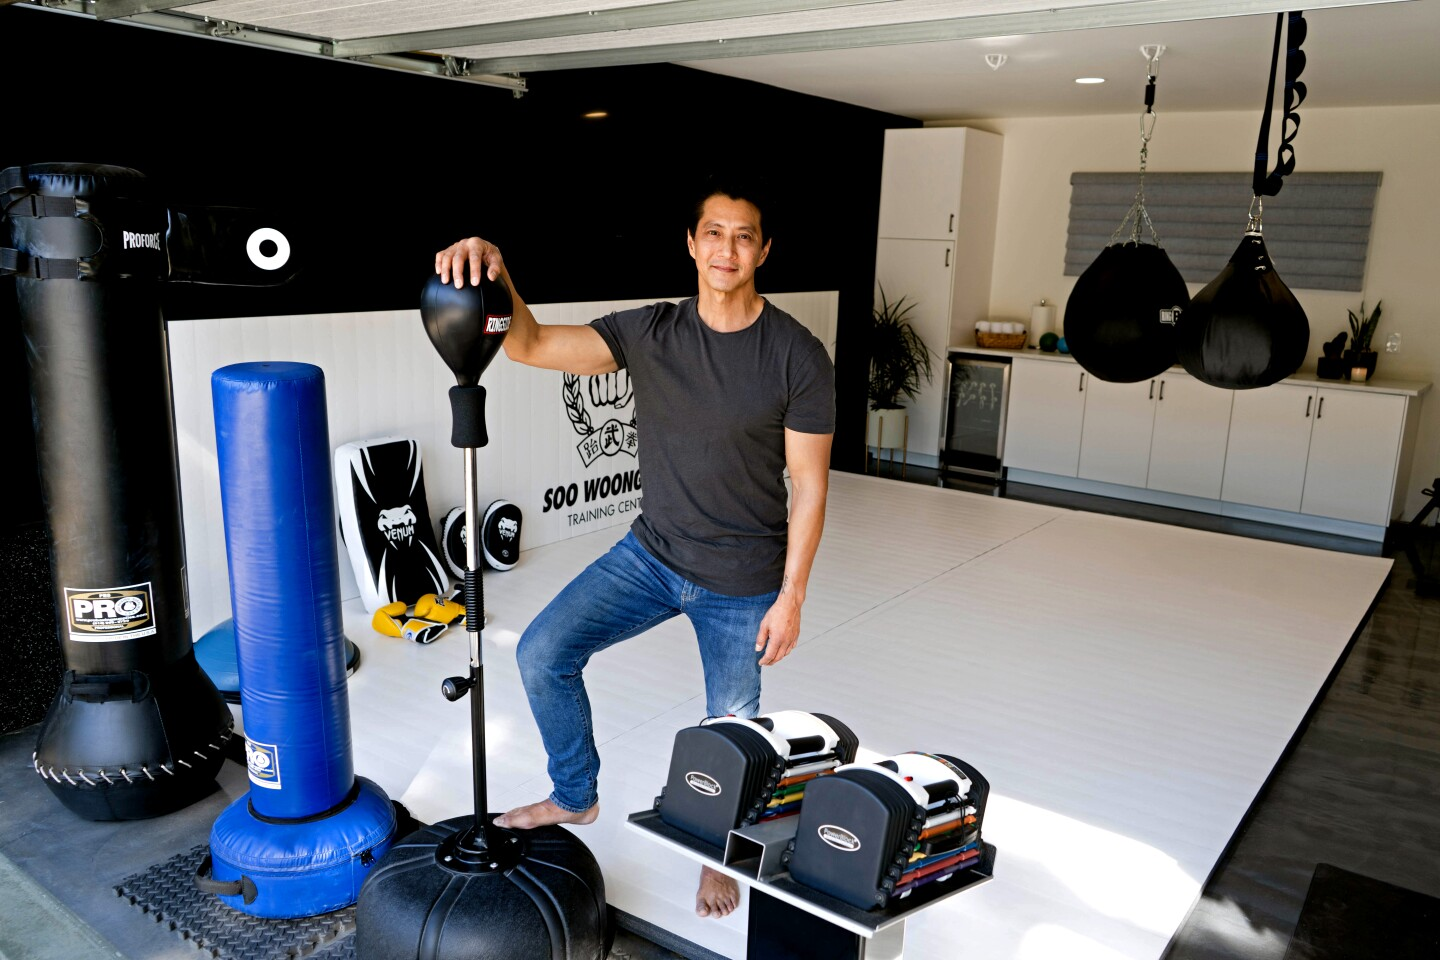 Actor and martial artist Will Yun Lee in the favorite room, the gym, of his home on Jan. 31, 2020. (Jesse Goddard / For The Times)